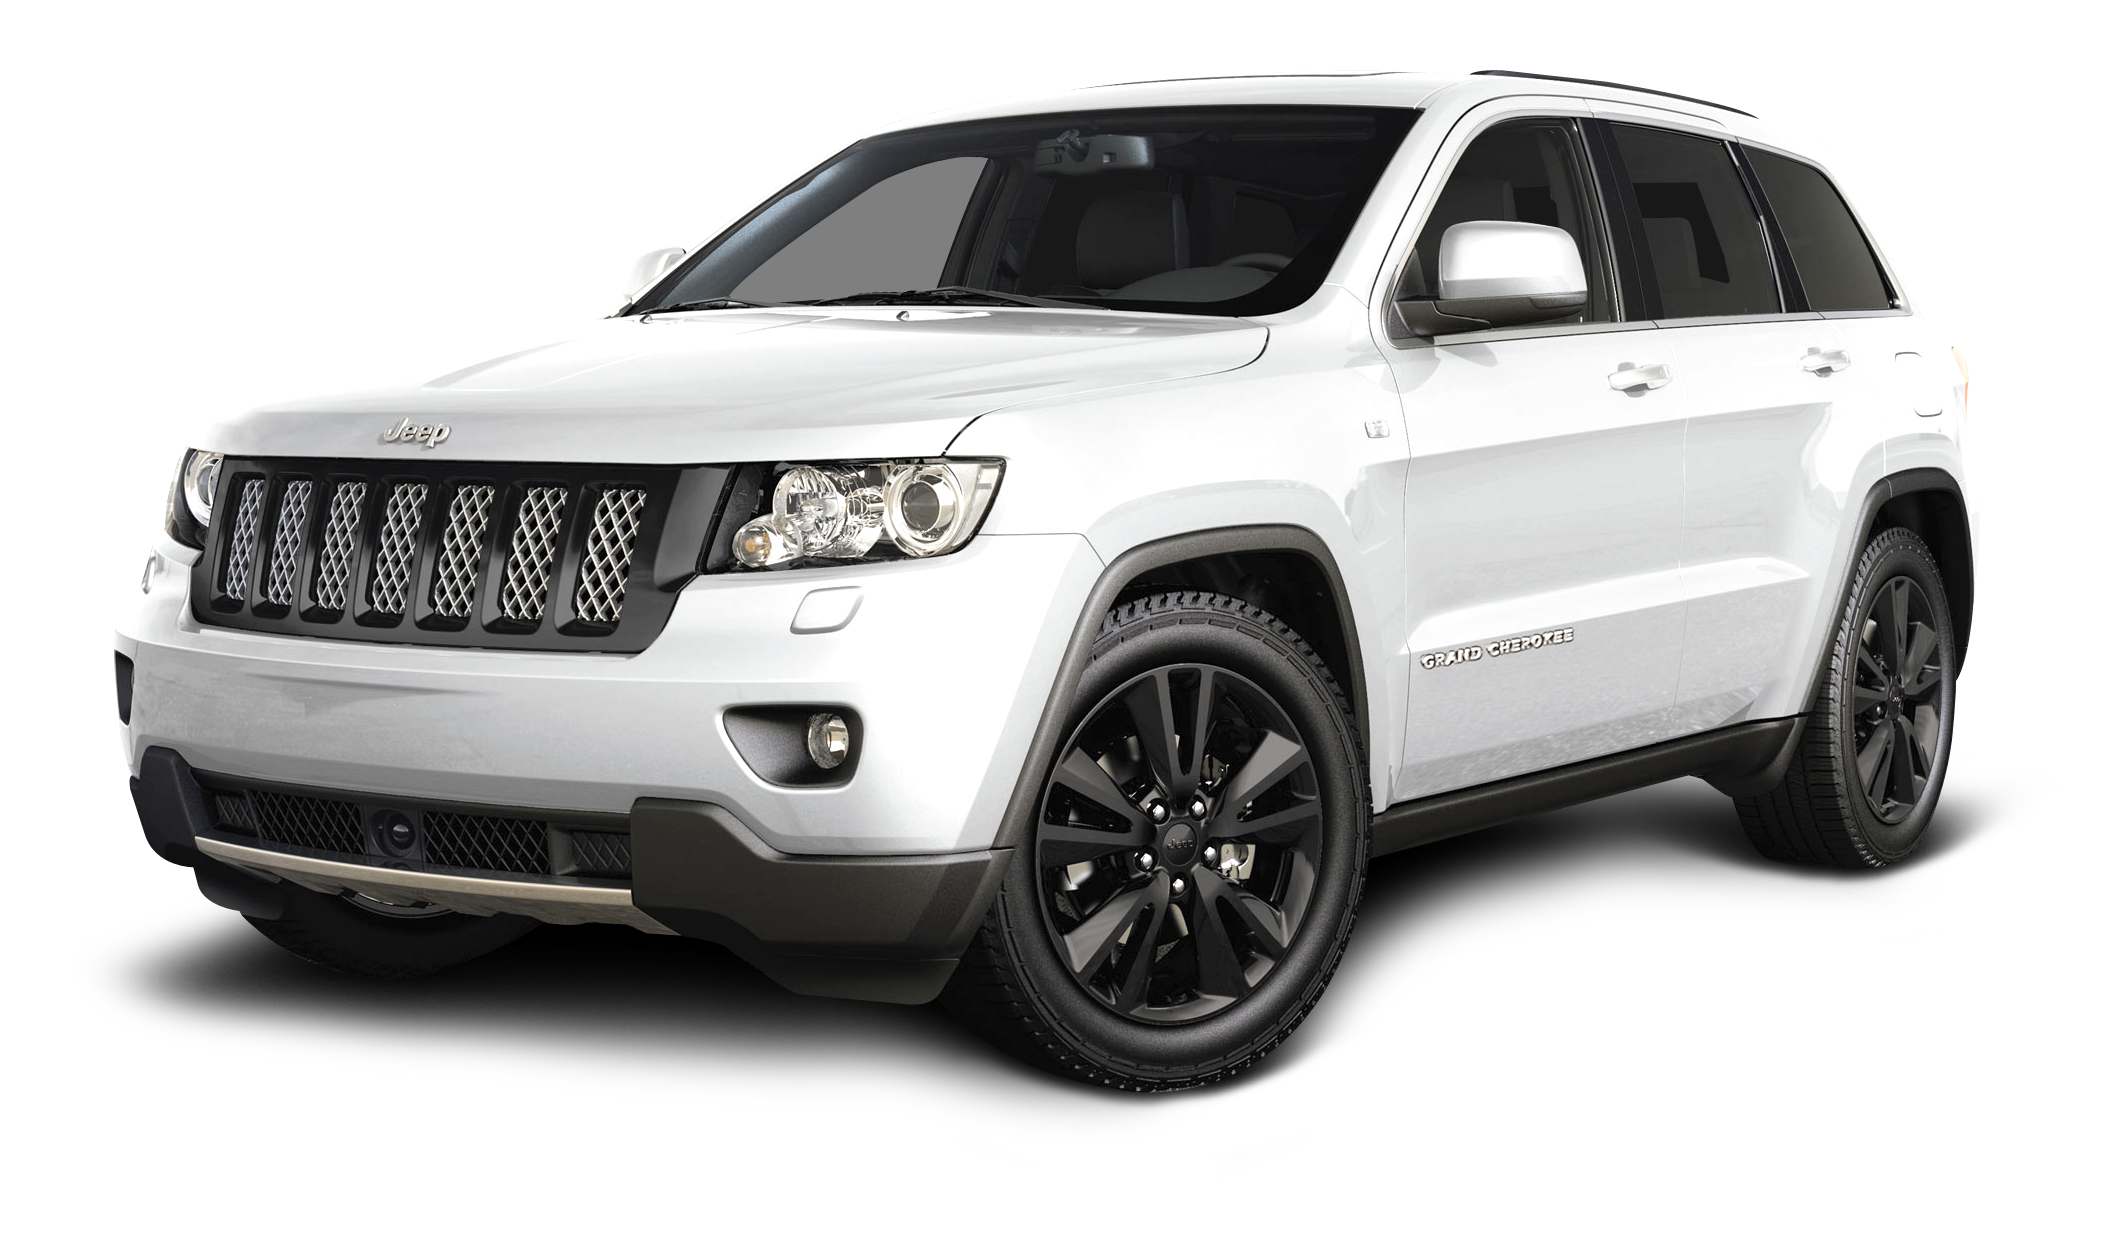 Jeep Grand Cherokee Car PNG Image.